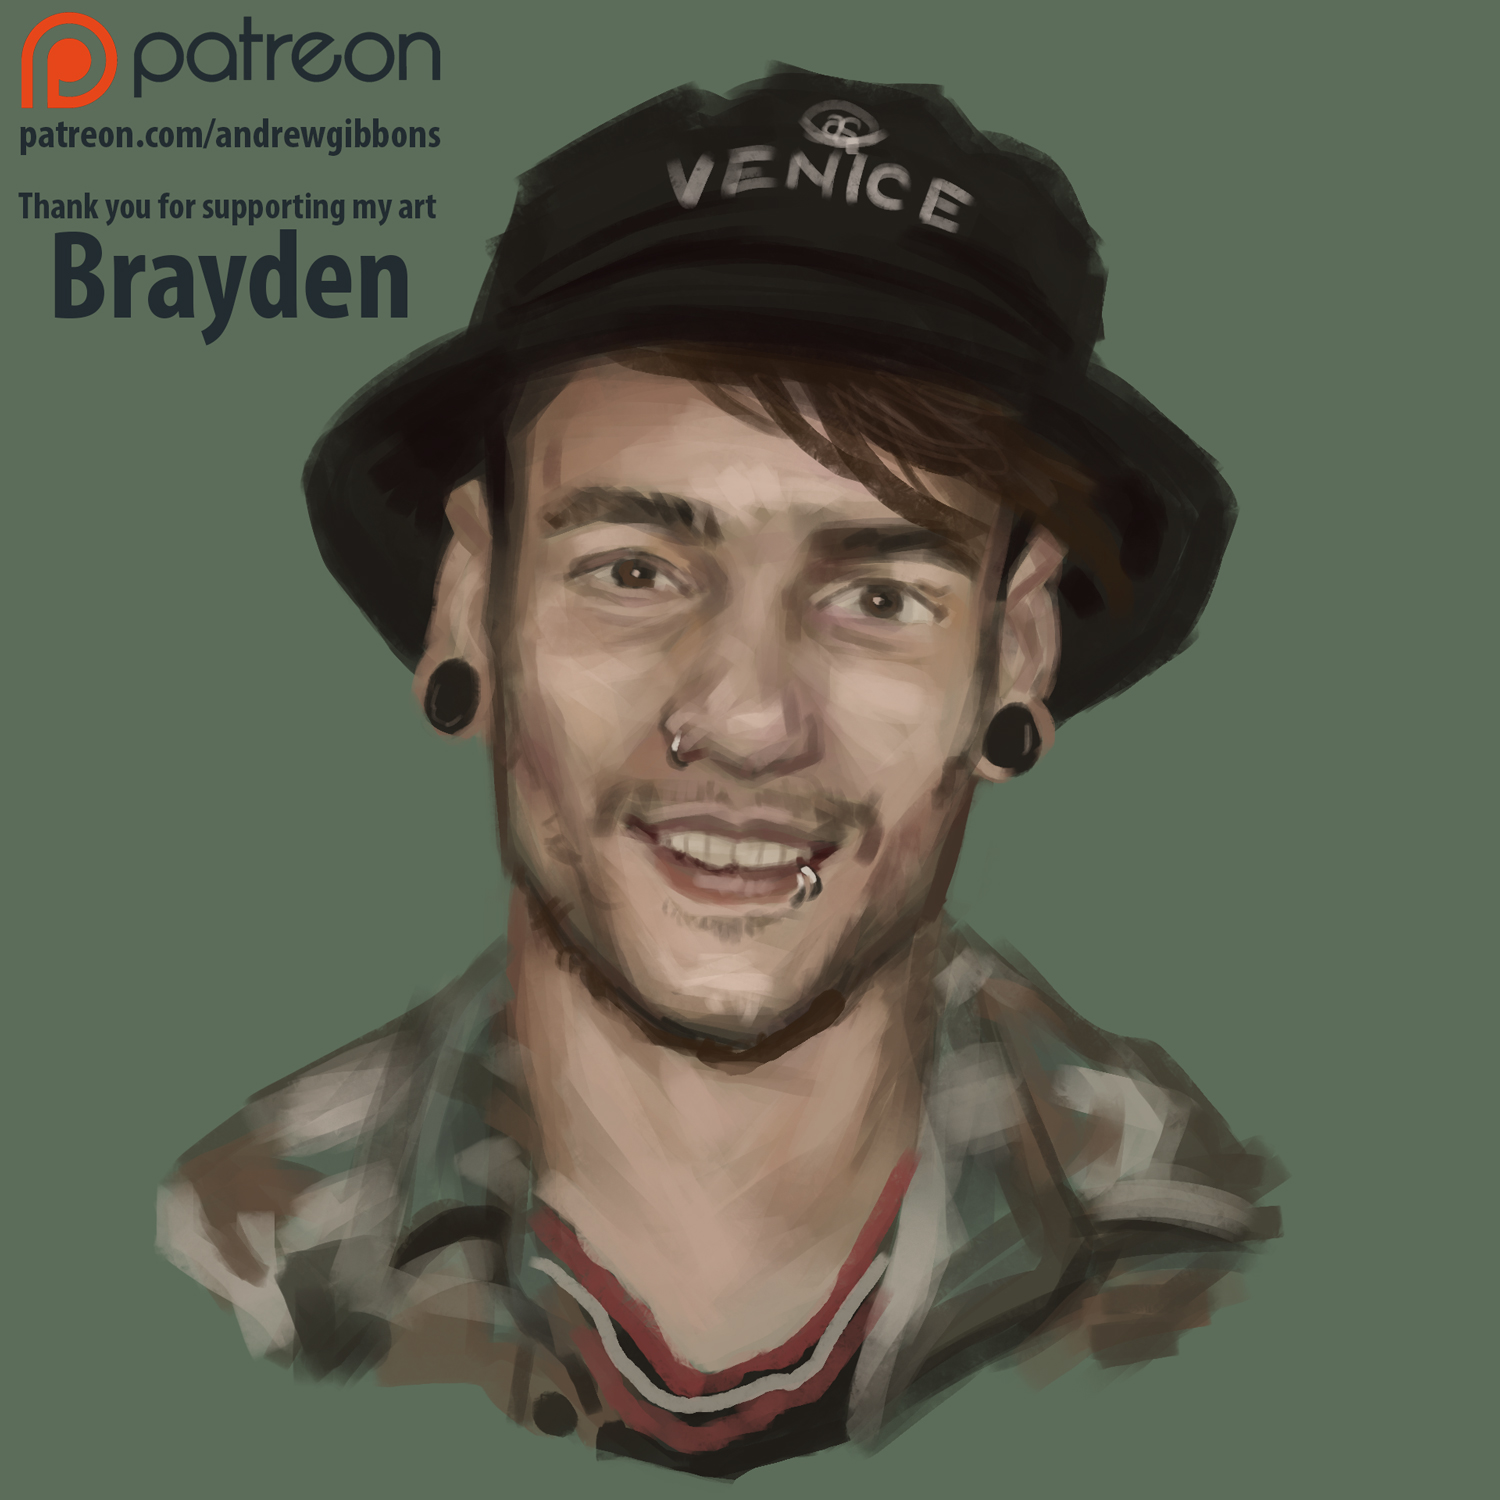 [Image: patron_portrait___brayden_by_andrew_gibbons-dbh8nx1.jpg]